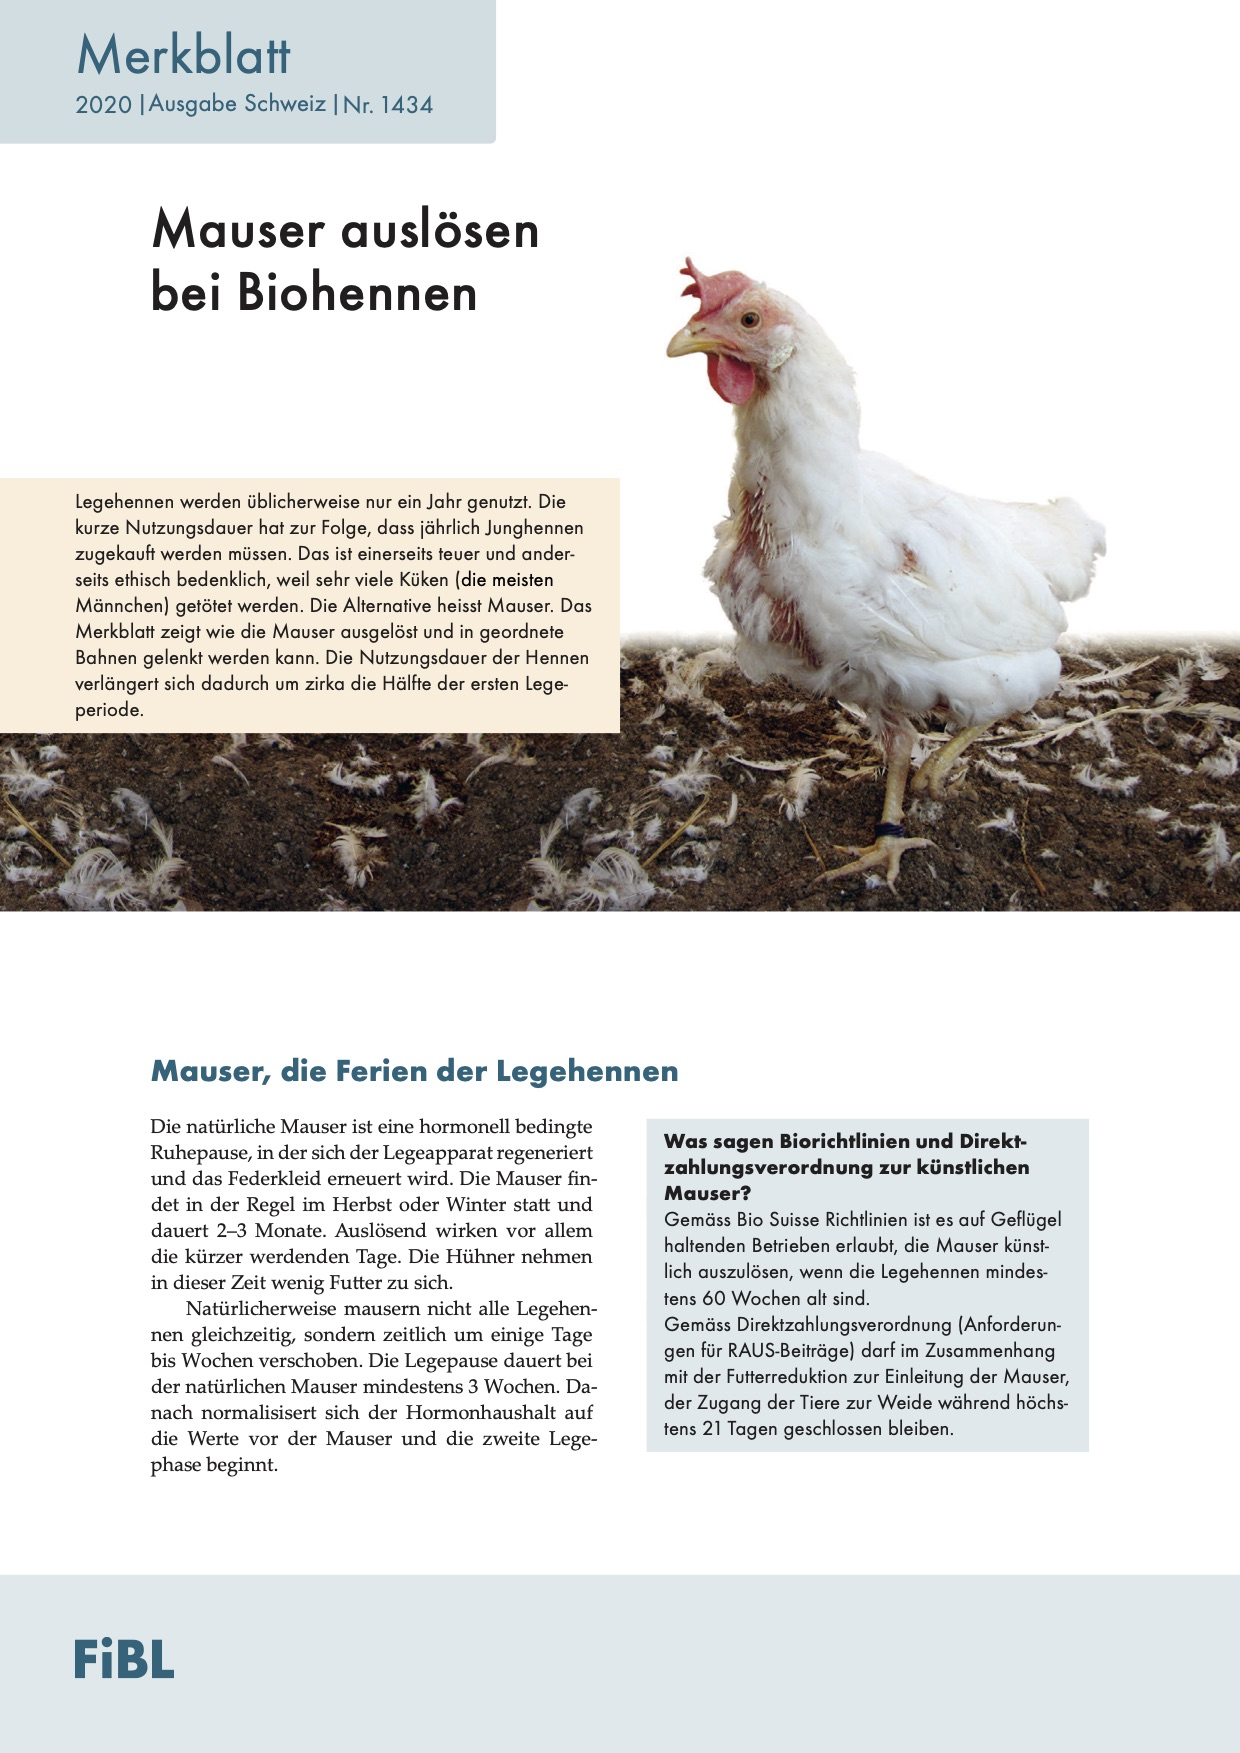 Inducing moulting in organic hens